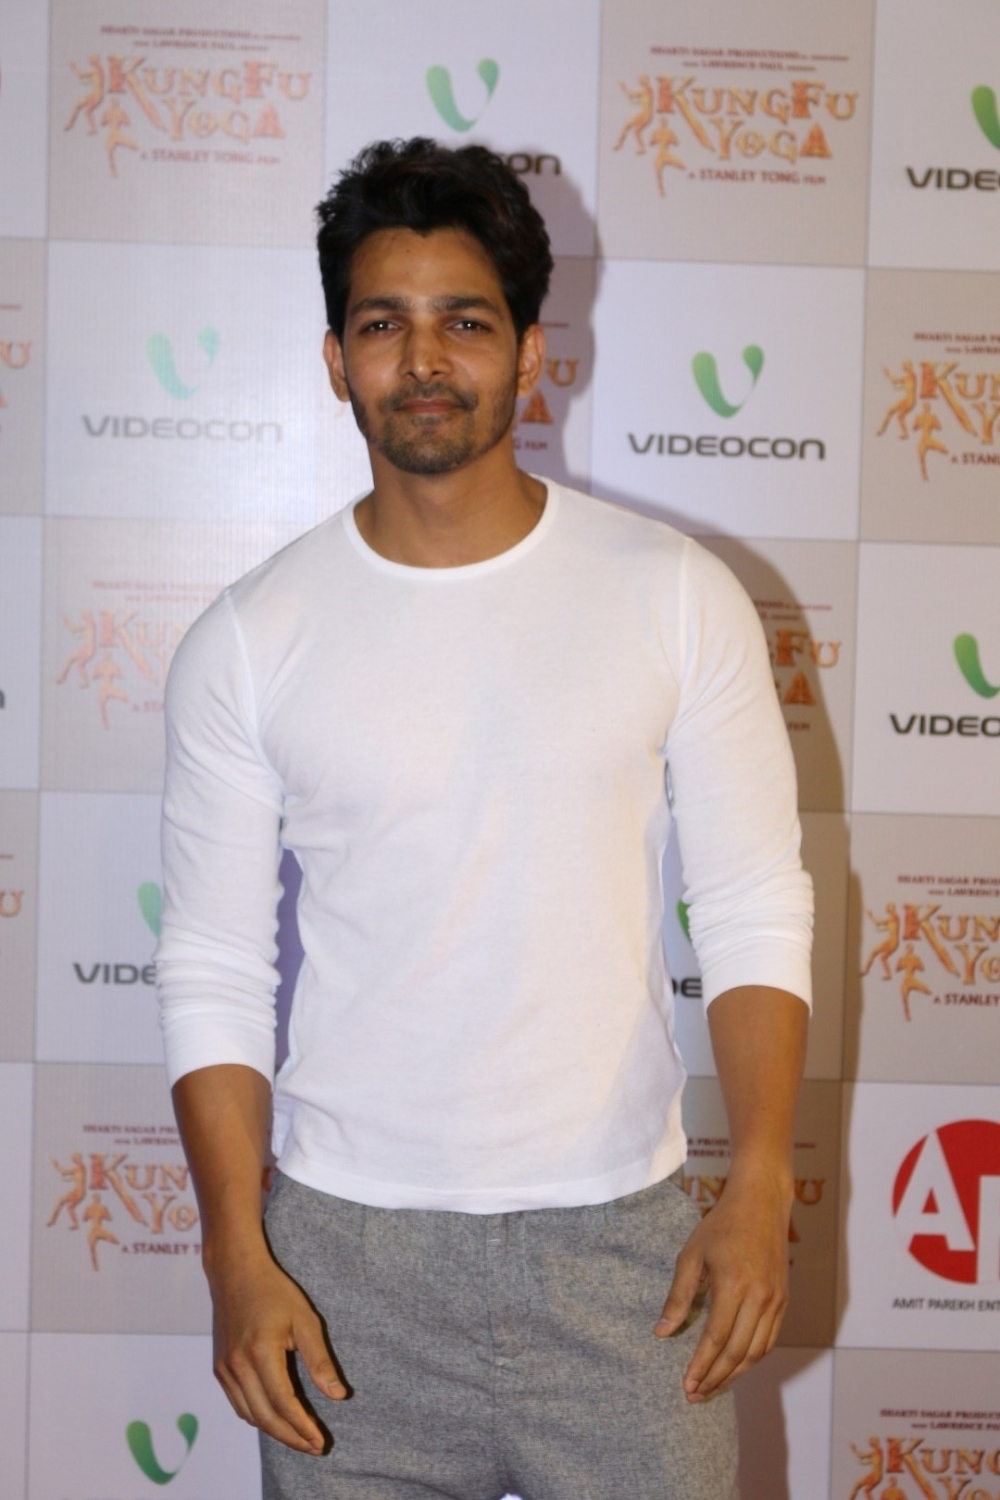 Mumbai: Actor Harshvardhan Rane during the screening of film Kung Fu Yoga in Mumbai on Feb 2, 2017. (Photo: IANS)